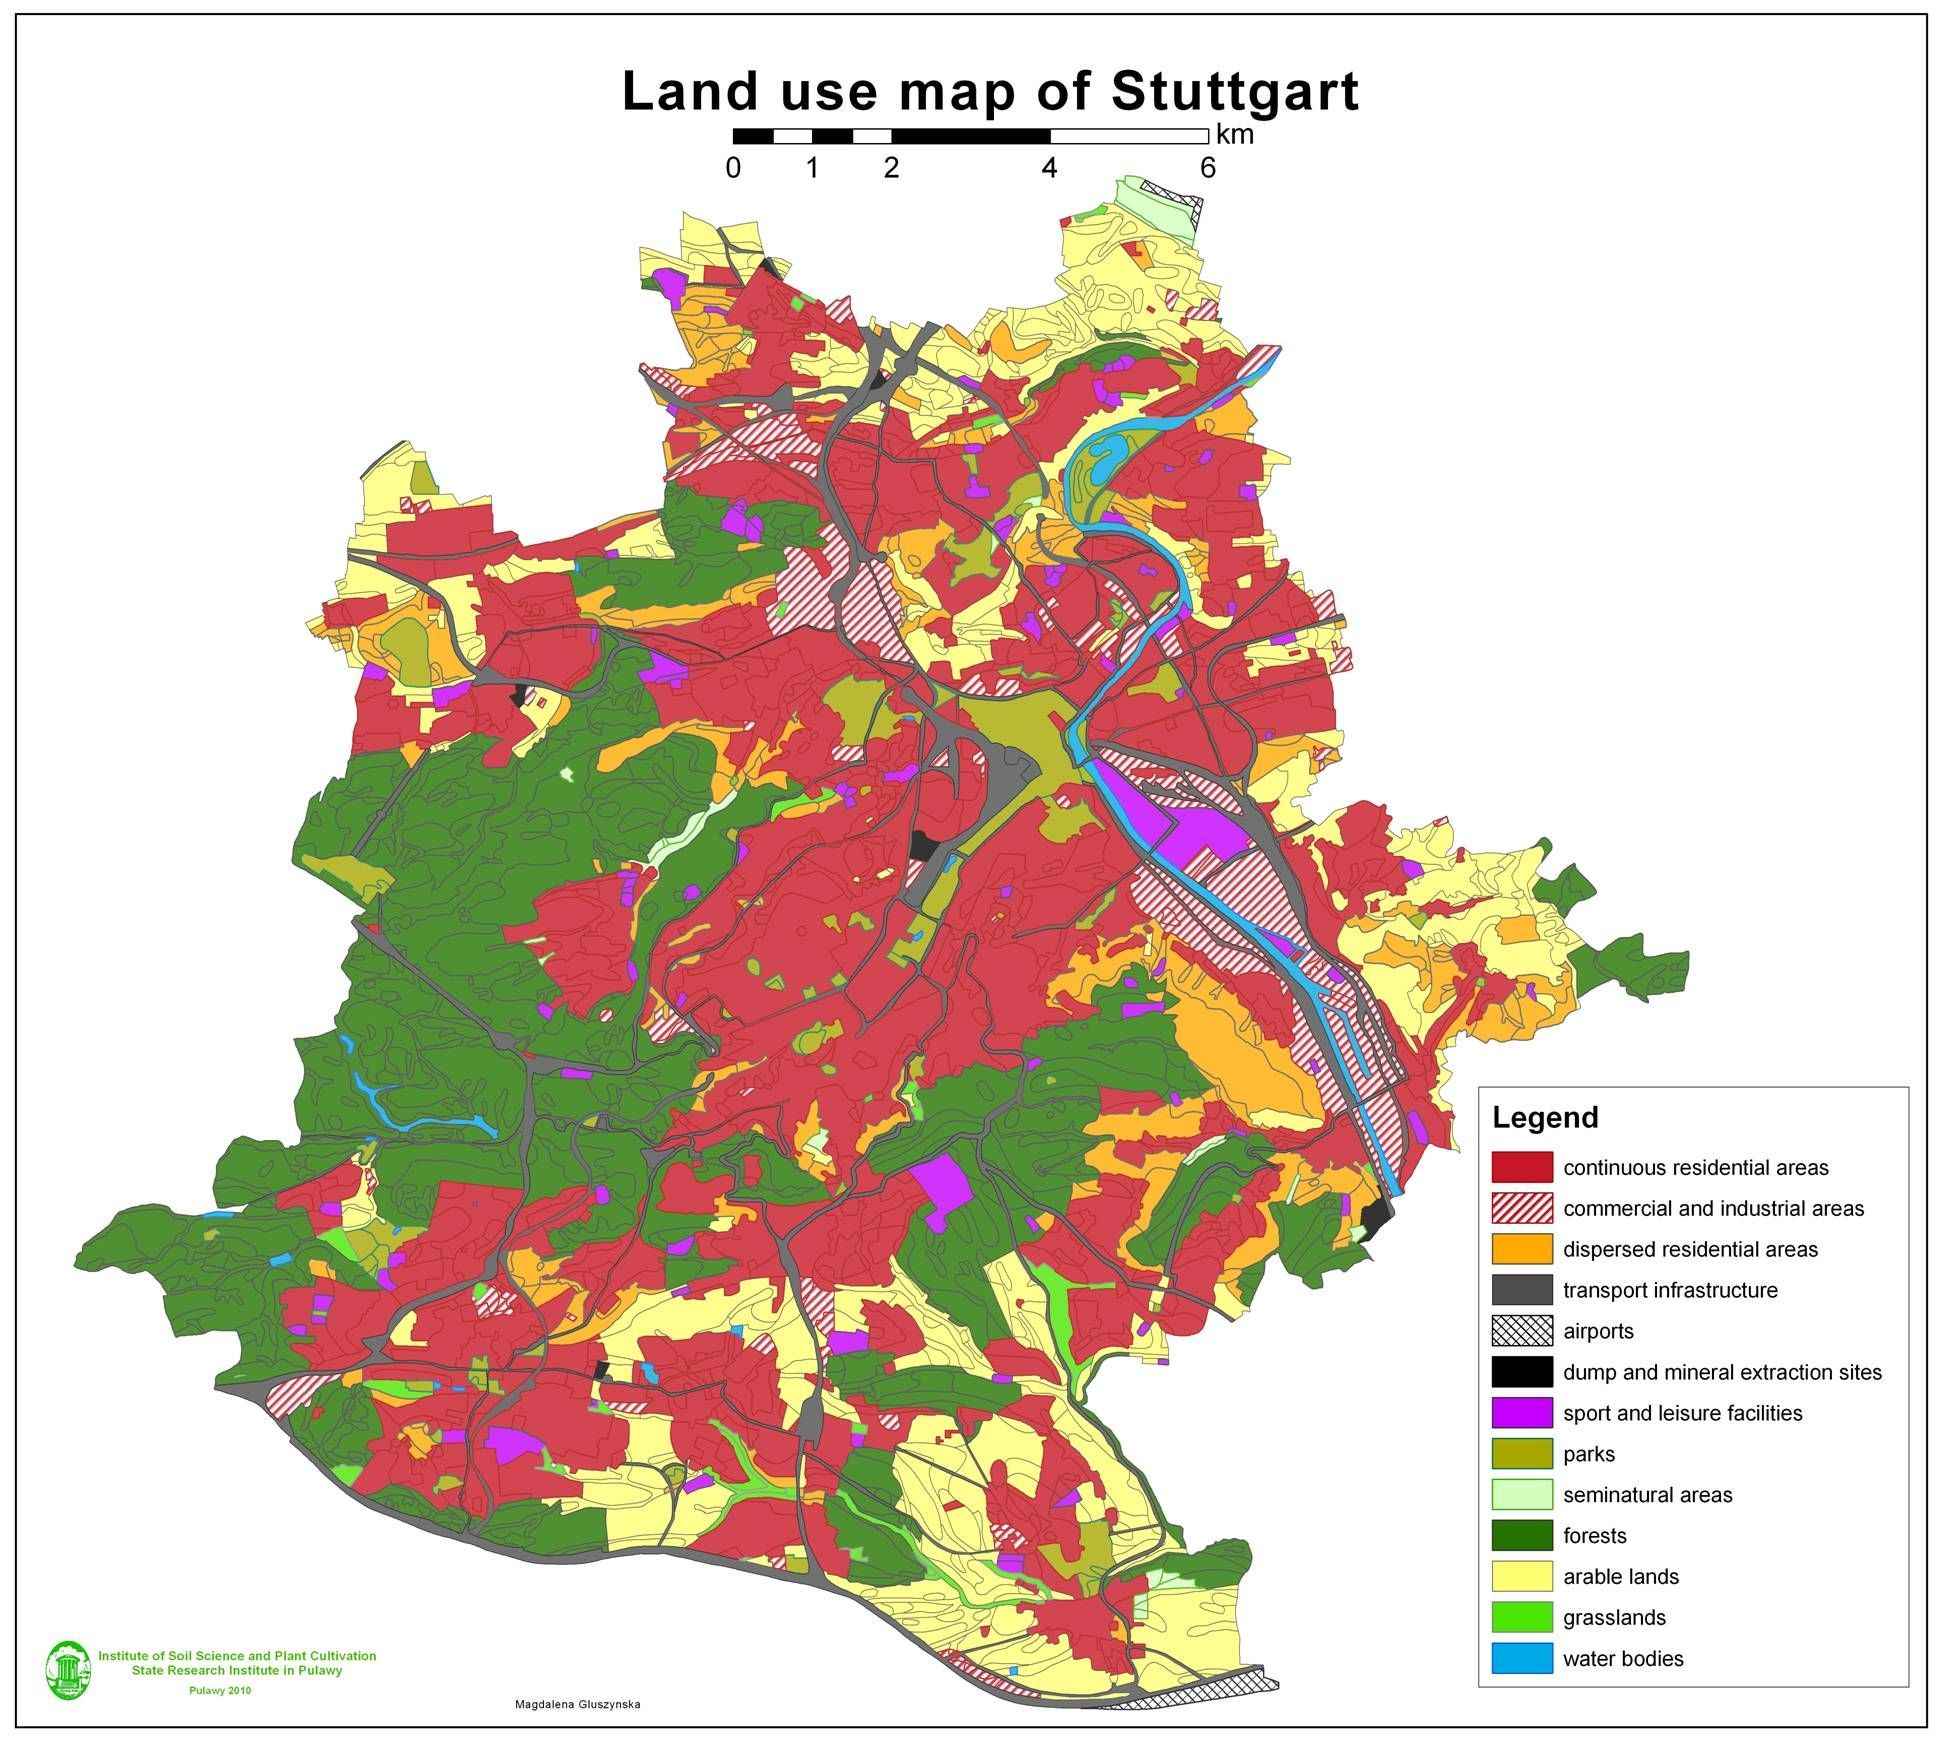 Germany This Is A Land Use Map Of Germany The Land Is Used - Germany map lands